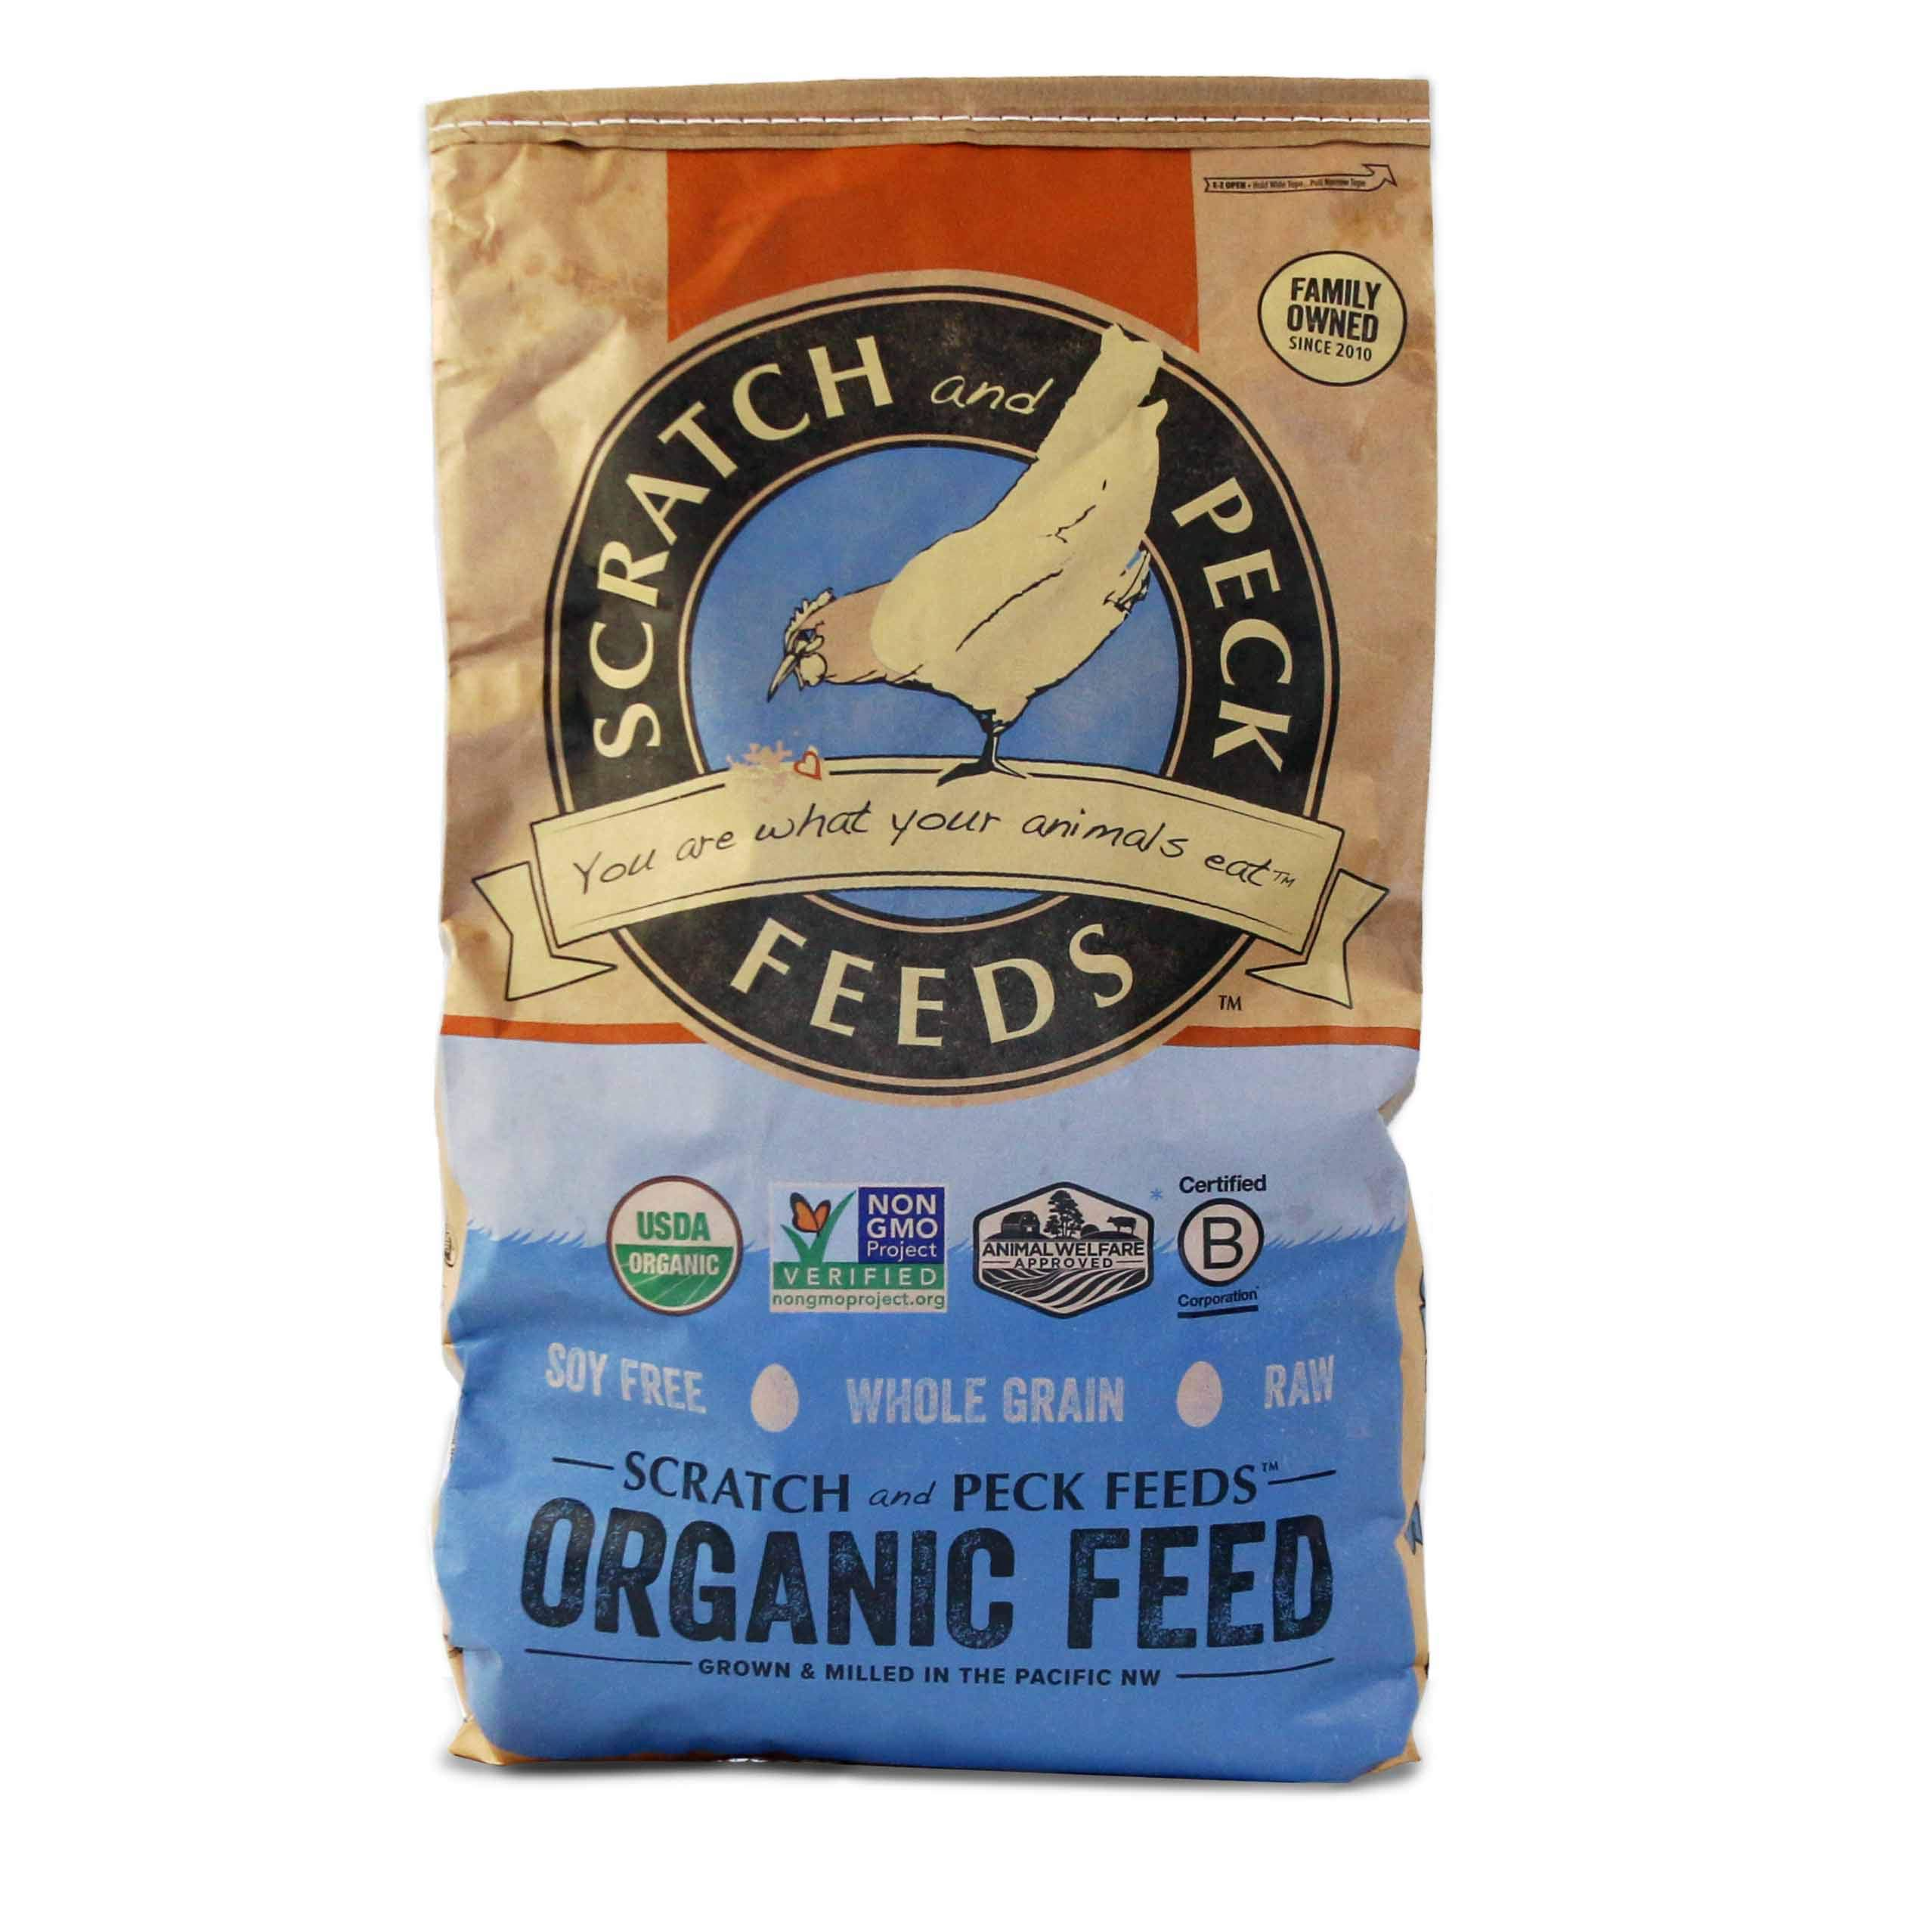 Scratch and Peck Feeds - Organic 3-Grain Scratch Hen Treat - Non-GMO Project Verified, Soy Free and Corn Free - 25-lbs by SCRATCH AND PECK FEEDS YOU ARE WHAT YOUR ANIMALS EAT